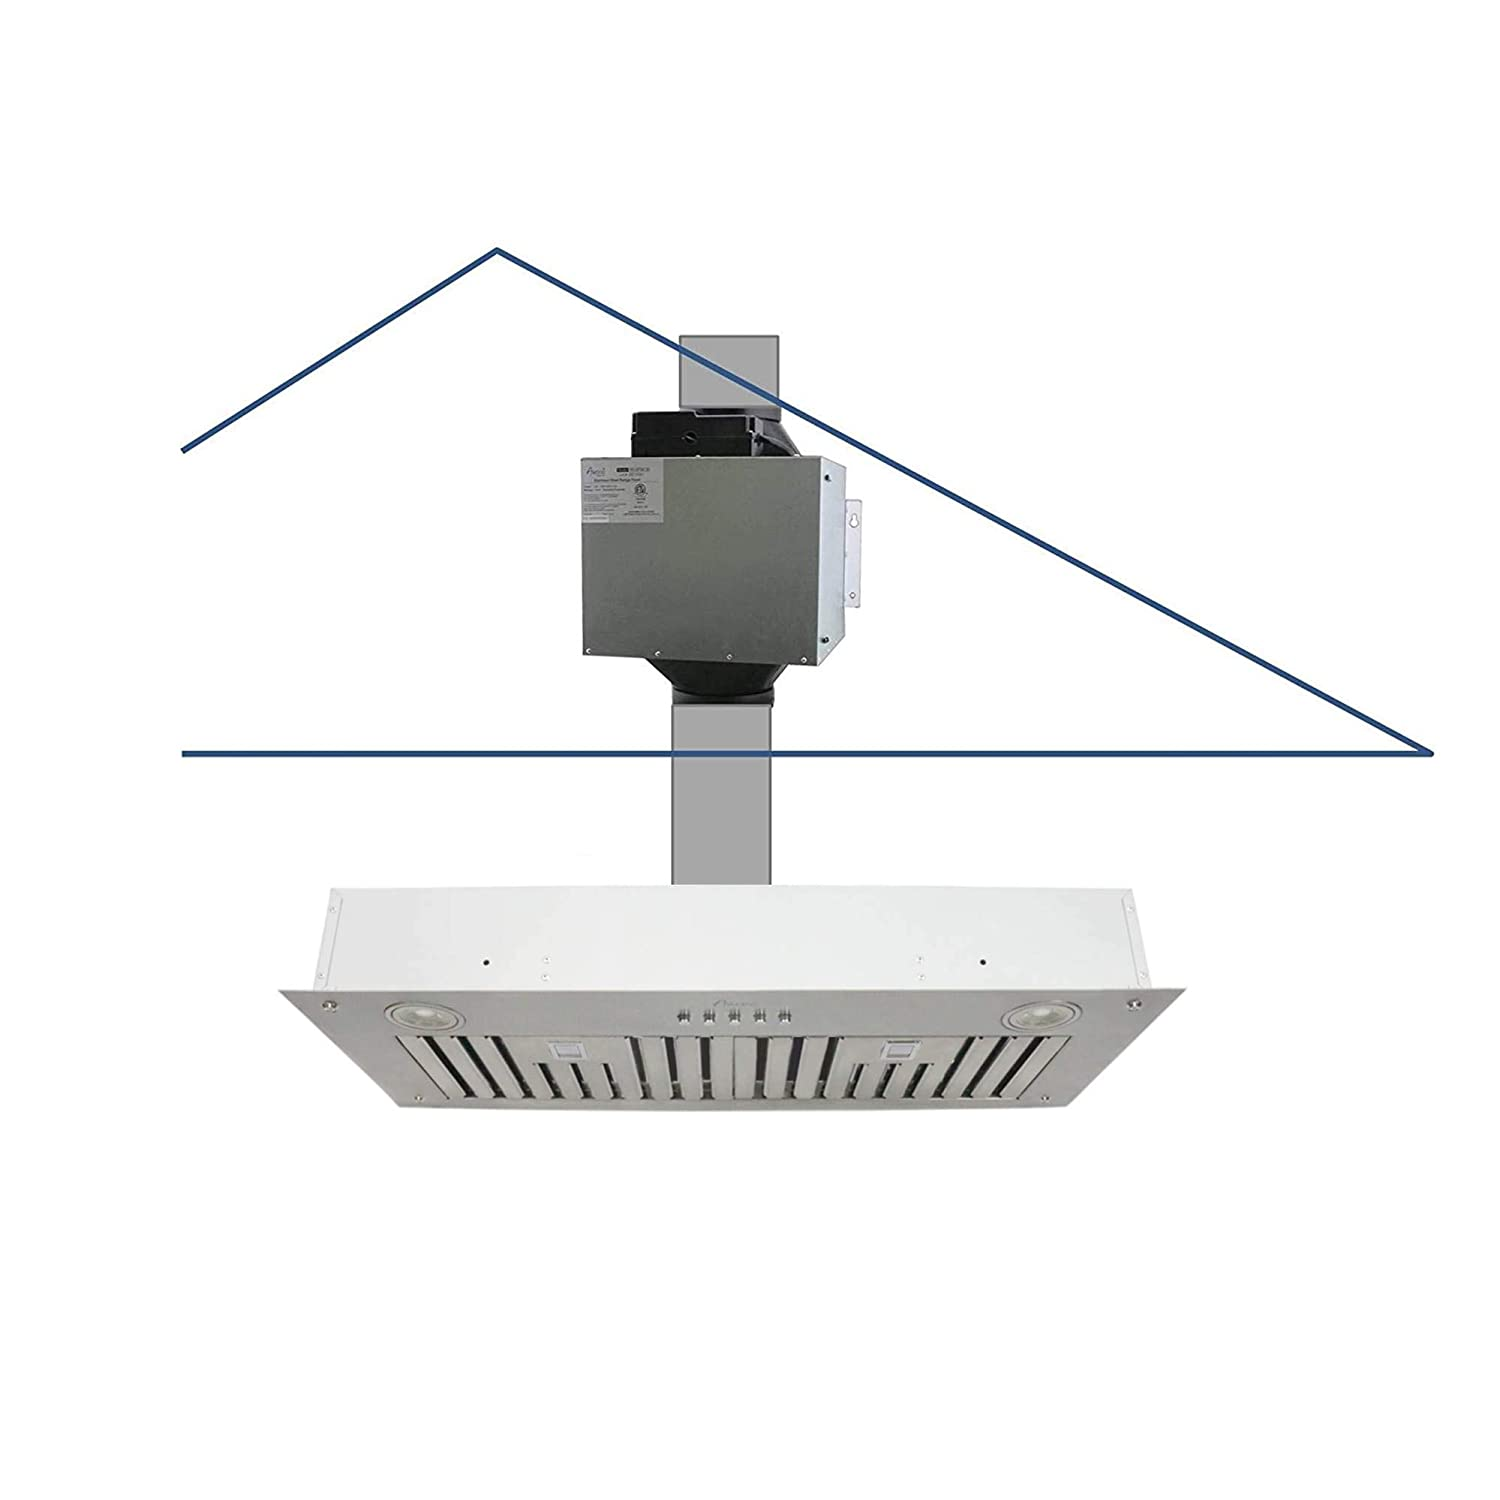 """Awoco Super Quiet Split Insert Stainless Steel Range Hood, 3-Speed, 800 CFM, LED Lights, Baffle Filters with 6"""" Blower (30""""W 6"""" Vent)"""